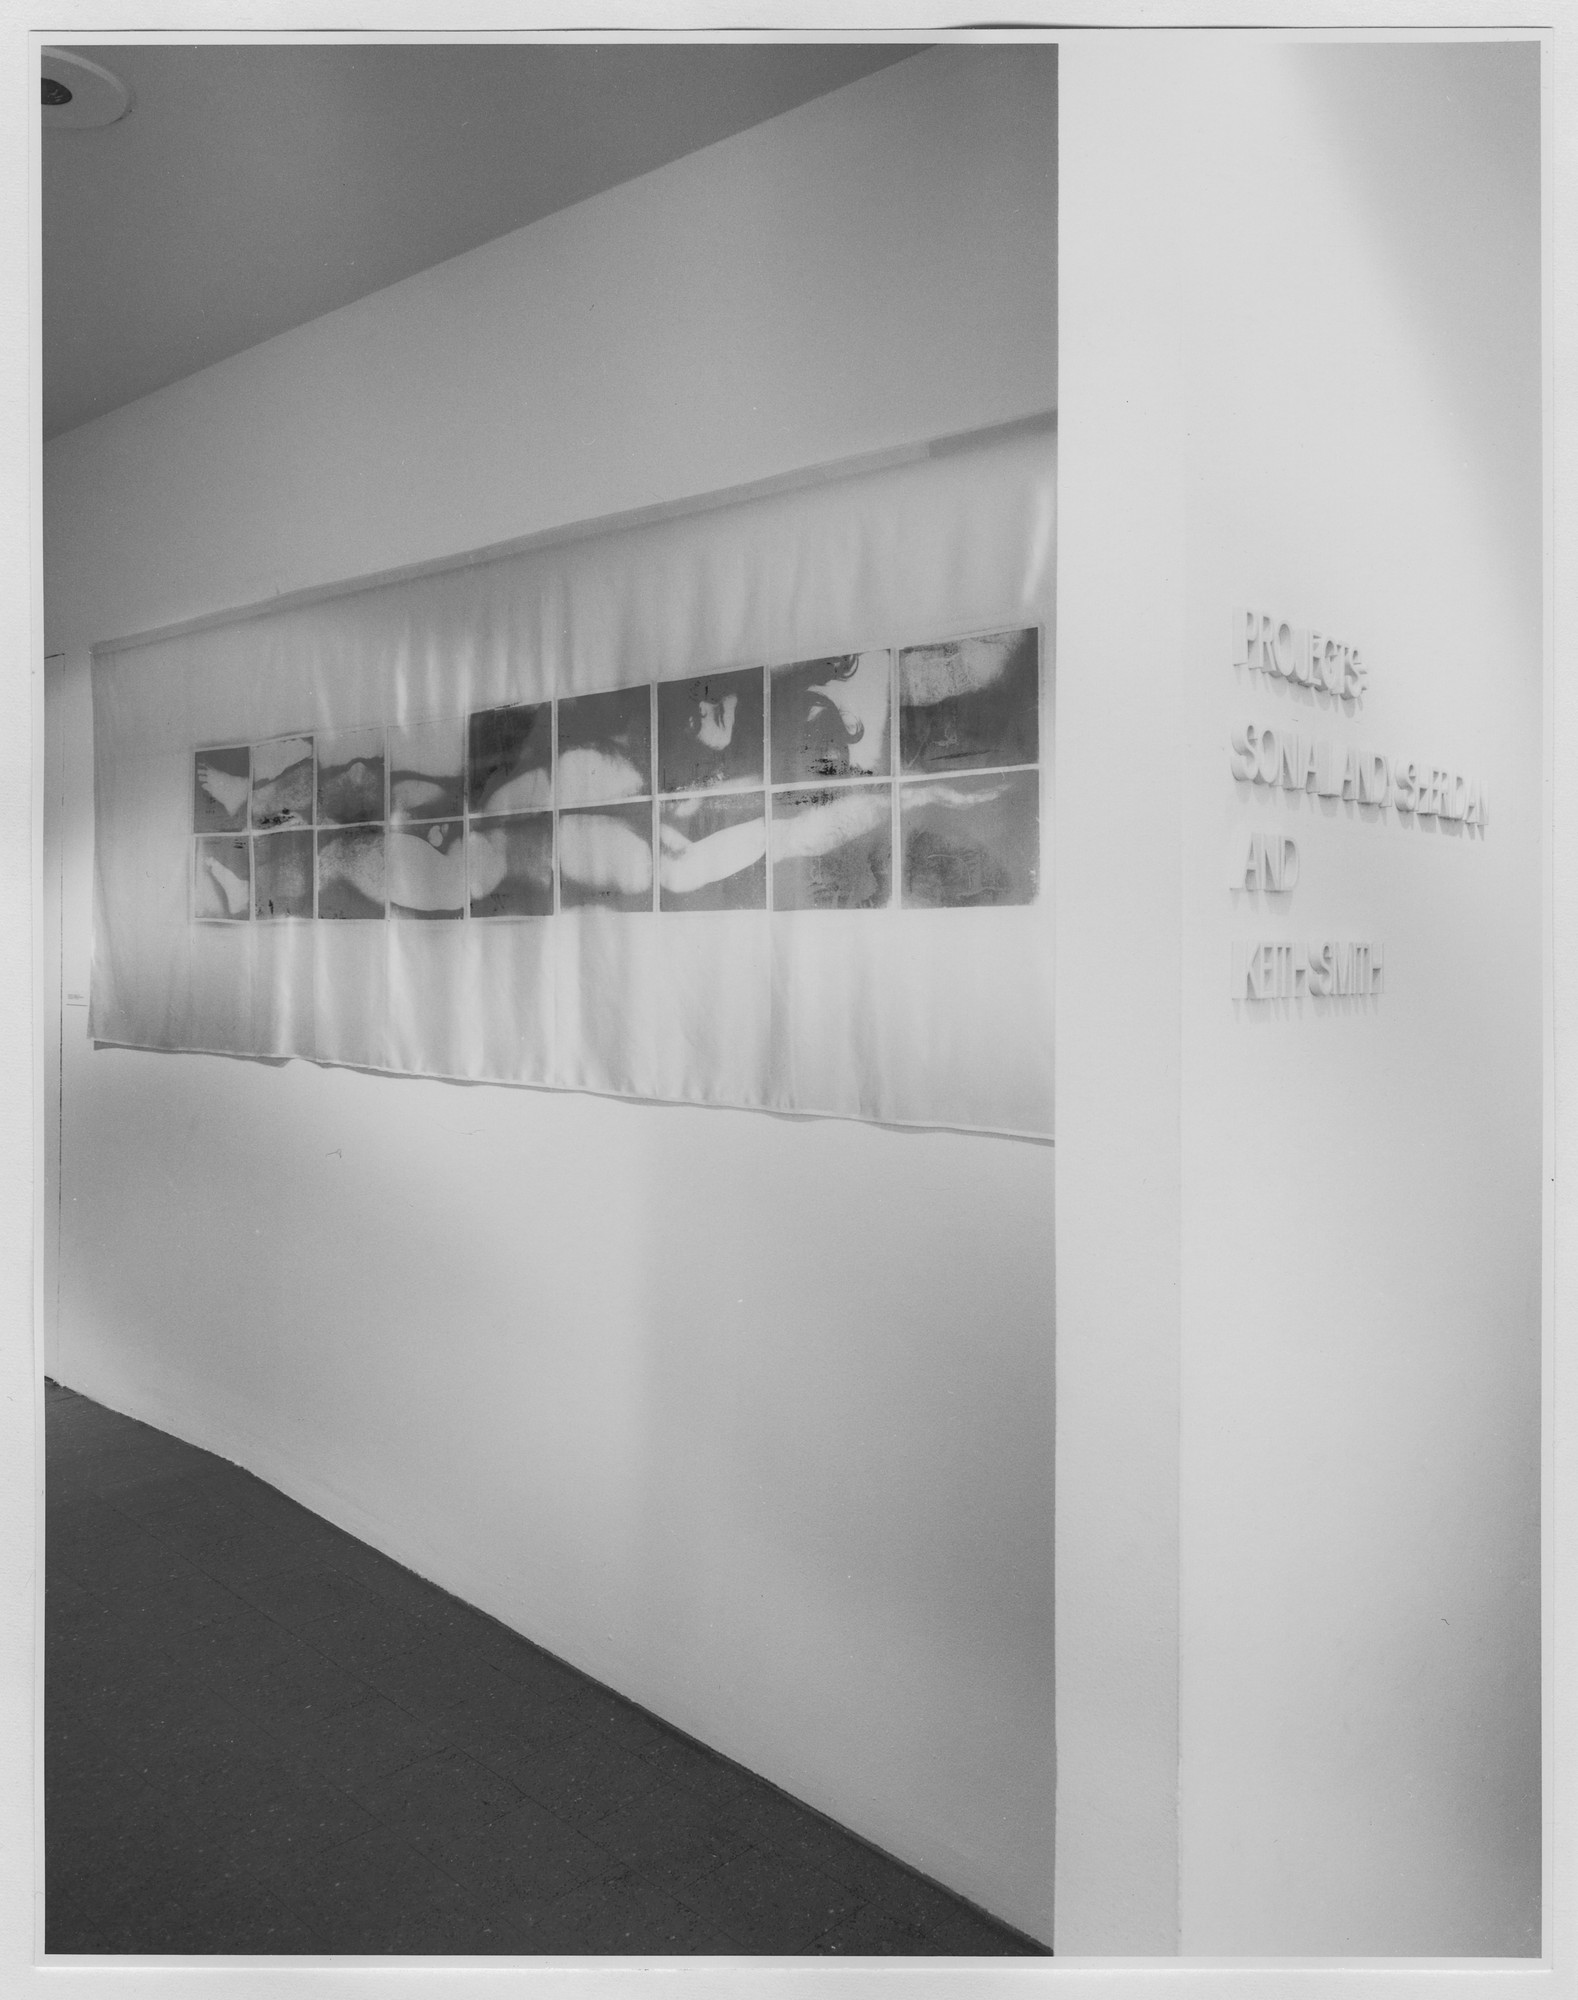 "Installation view of the exhibition, ""Projects: Sonia Landy Sheridan and Keith Smith."" June 4, 1974–July 14, 1974. Photographic Archive. The Museum of Modern Art Archives, New York. IN1063.1. Photograph by Katherine Keller."